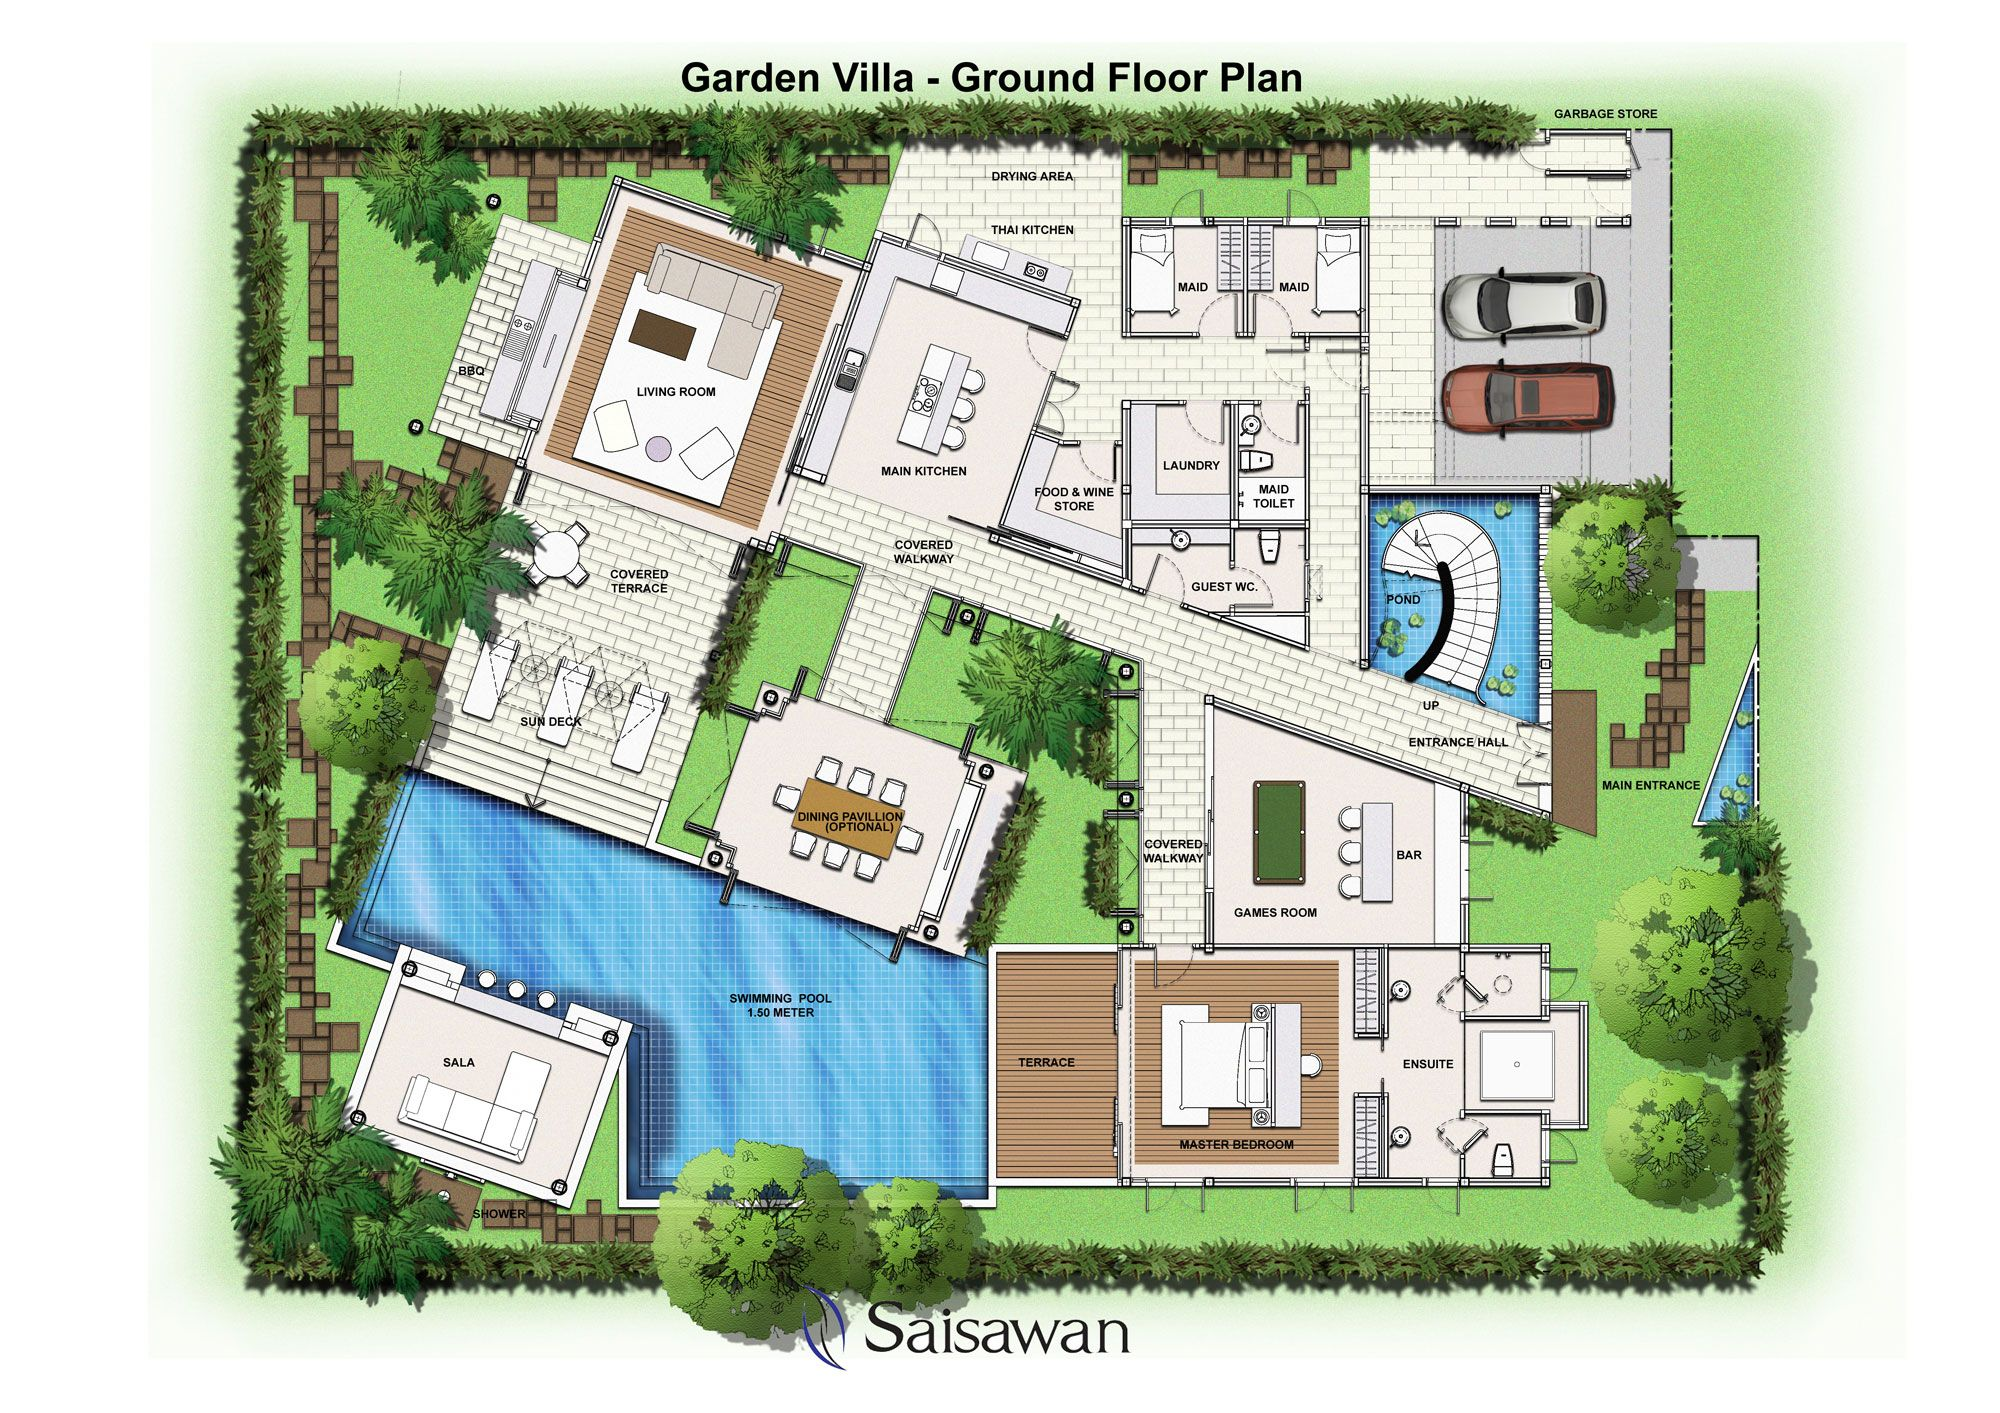 Saisawan garden villas ground floor plan house plans for Small home garden plans